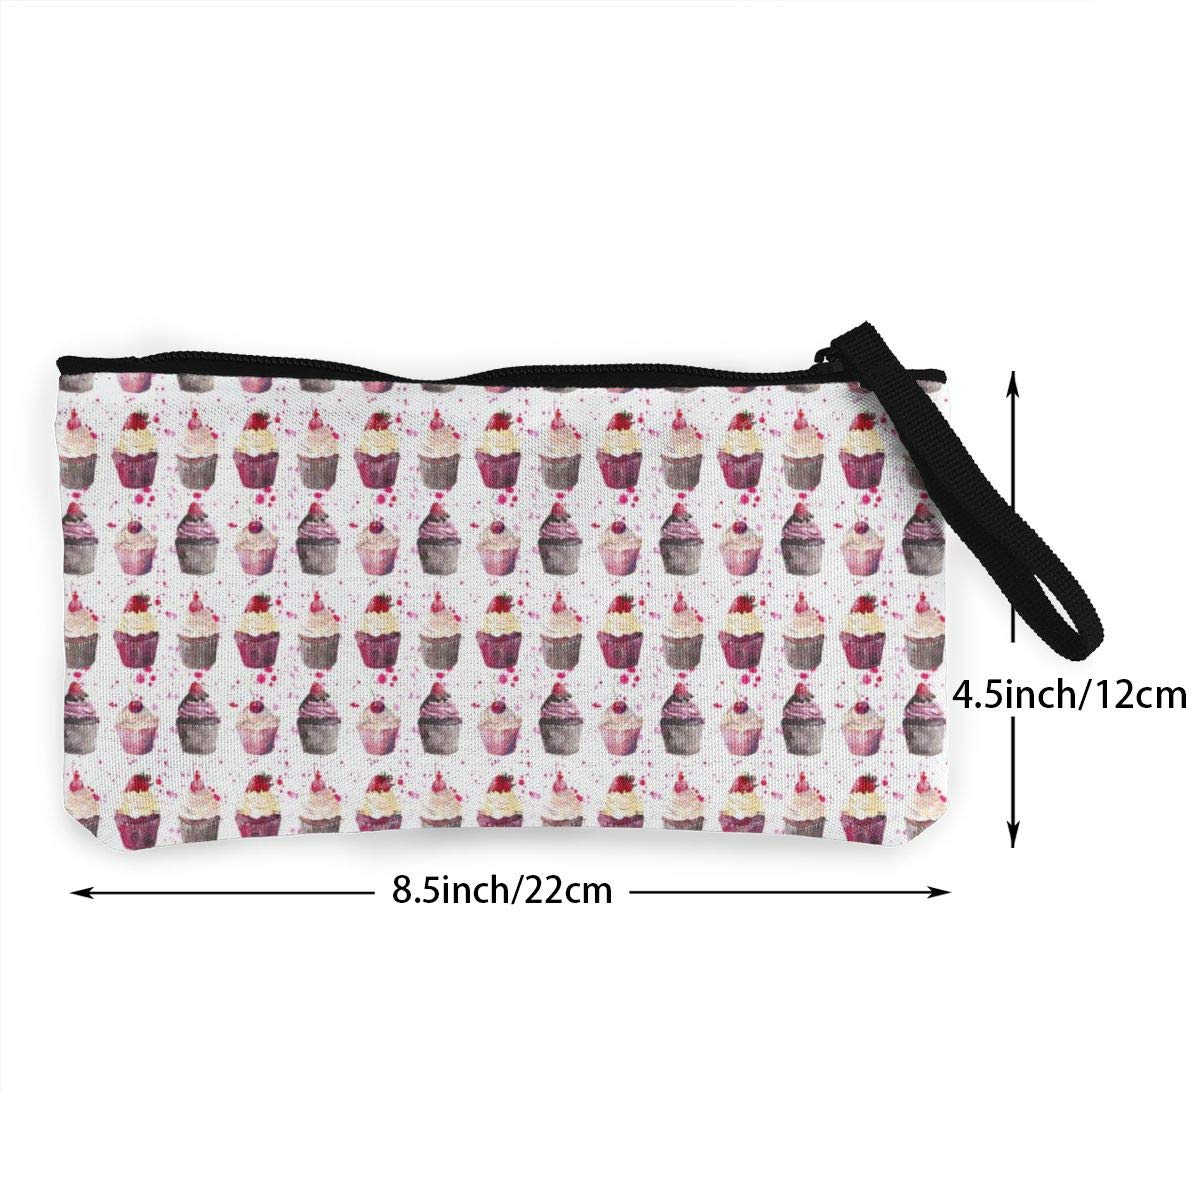 YUANSHAN Strawberry Cup Cake Unisex Canvas Coin Purse Change Cash Bag Zipper Small Purse Wallets with Handle